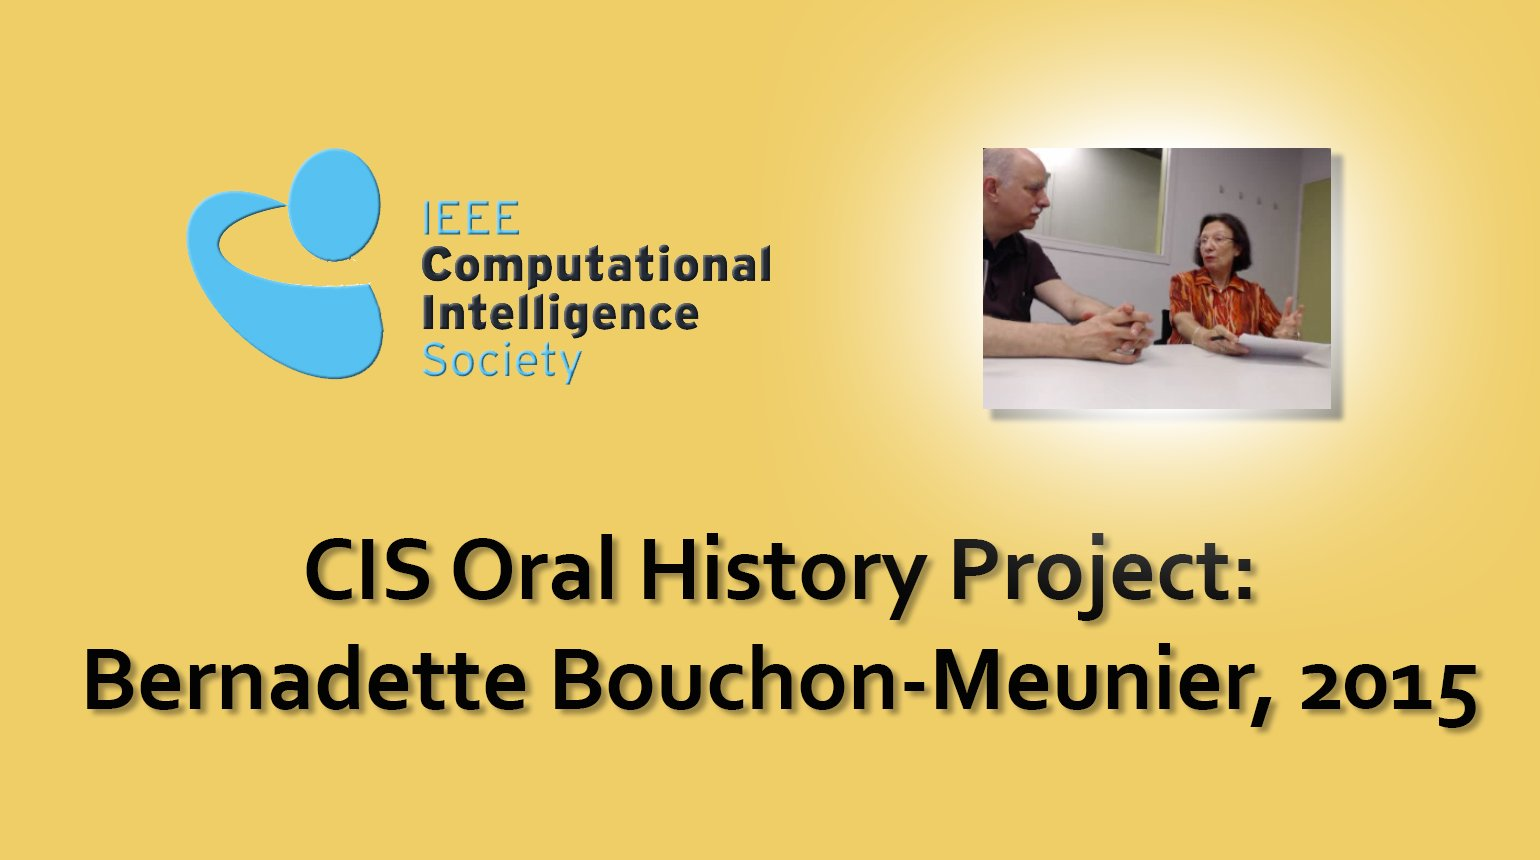 Interview with Bernadette Bouchon-Meunier, 2015: CIS Oral History Project